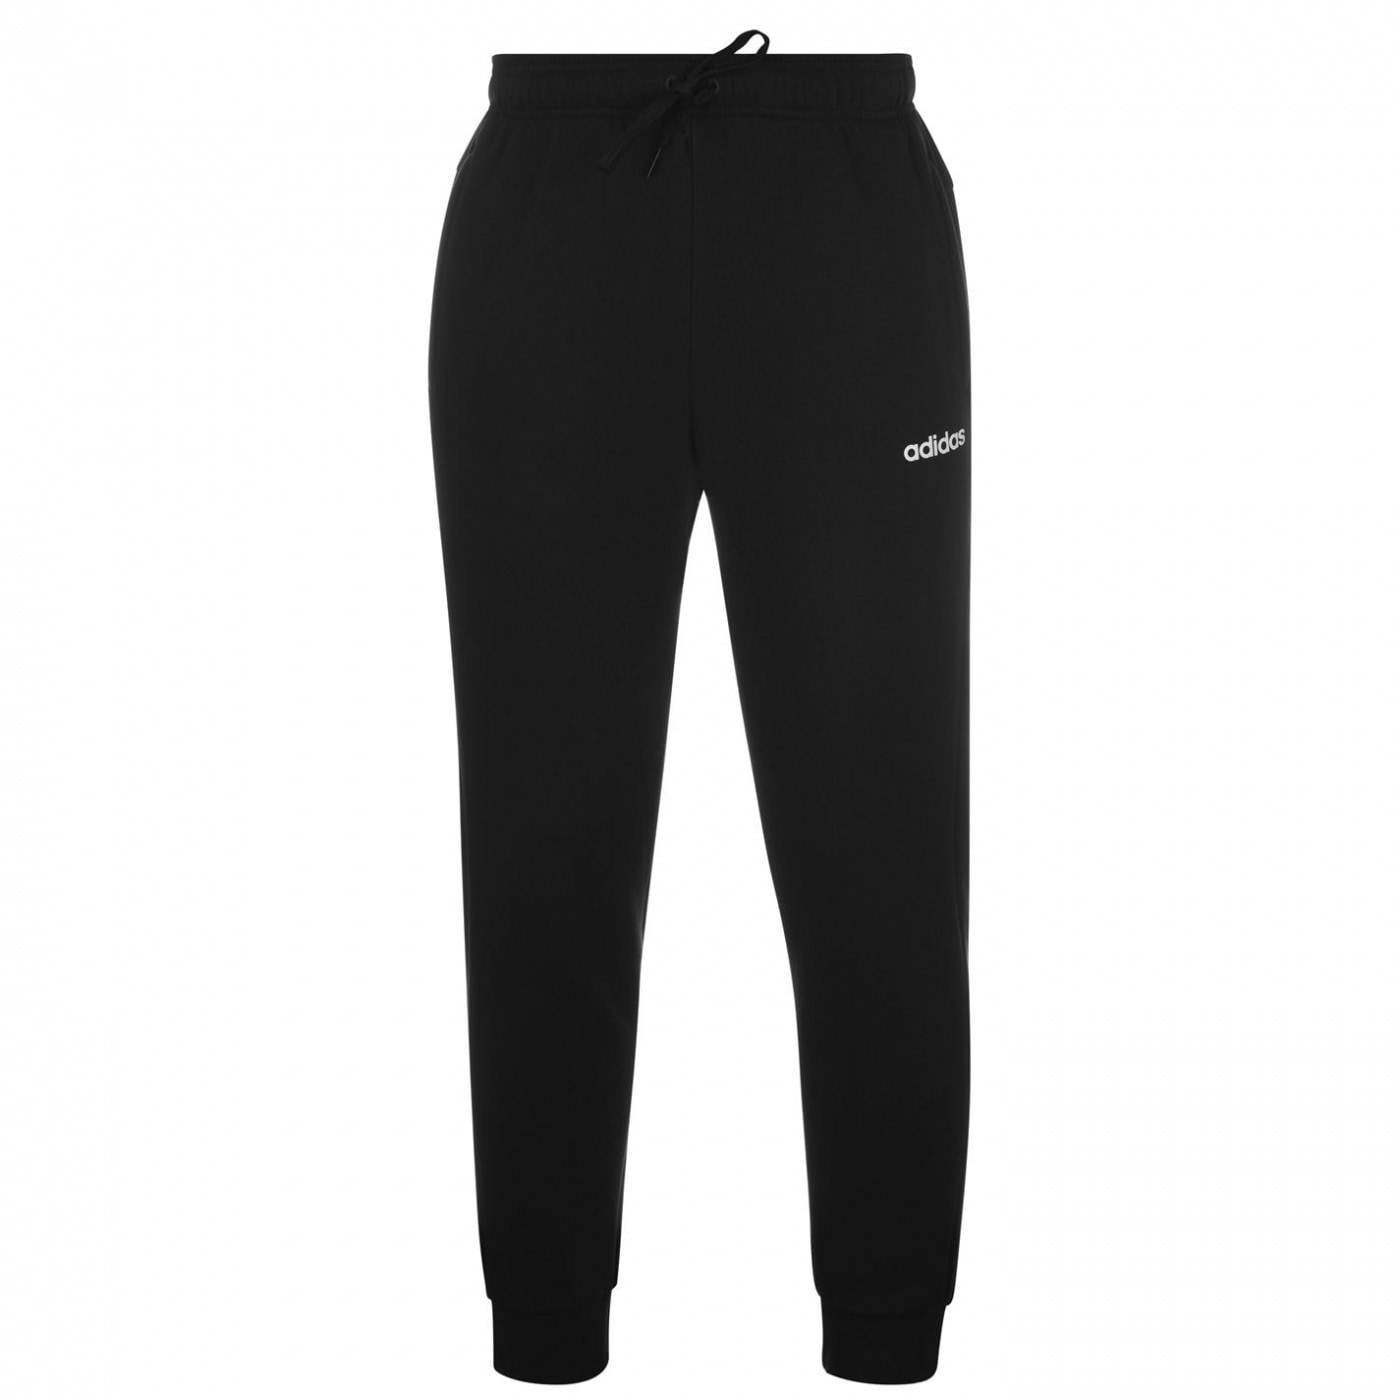 Adidas Fleece Jogging Bottoms Mens